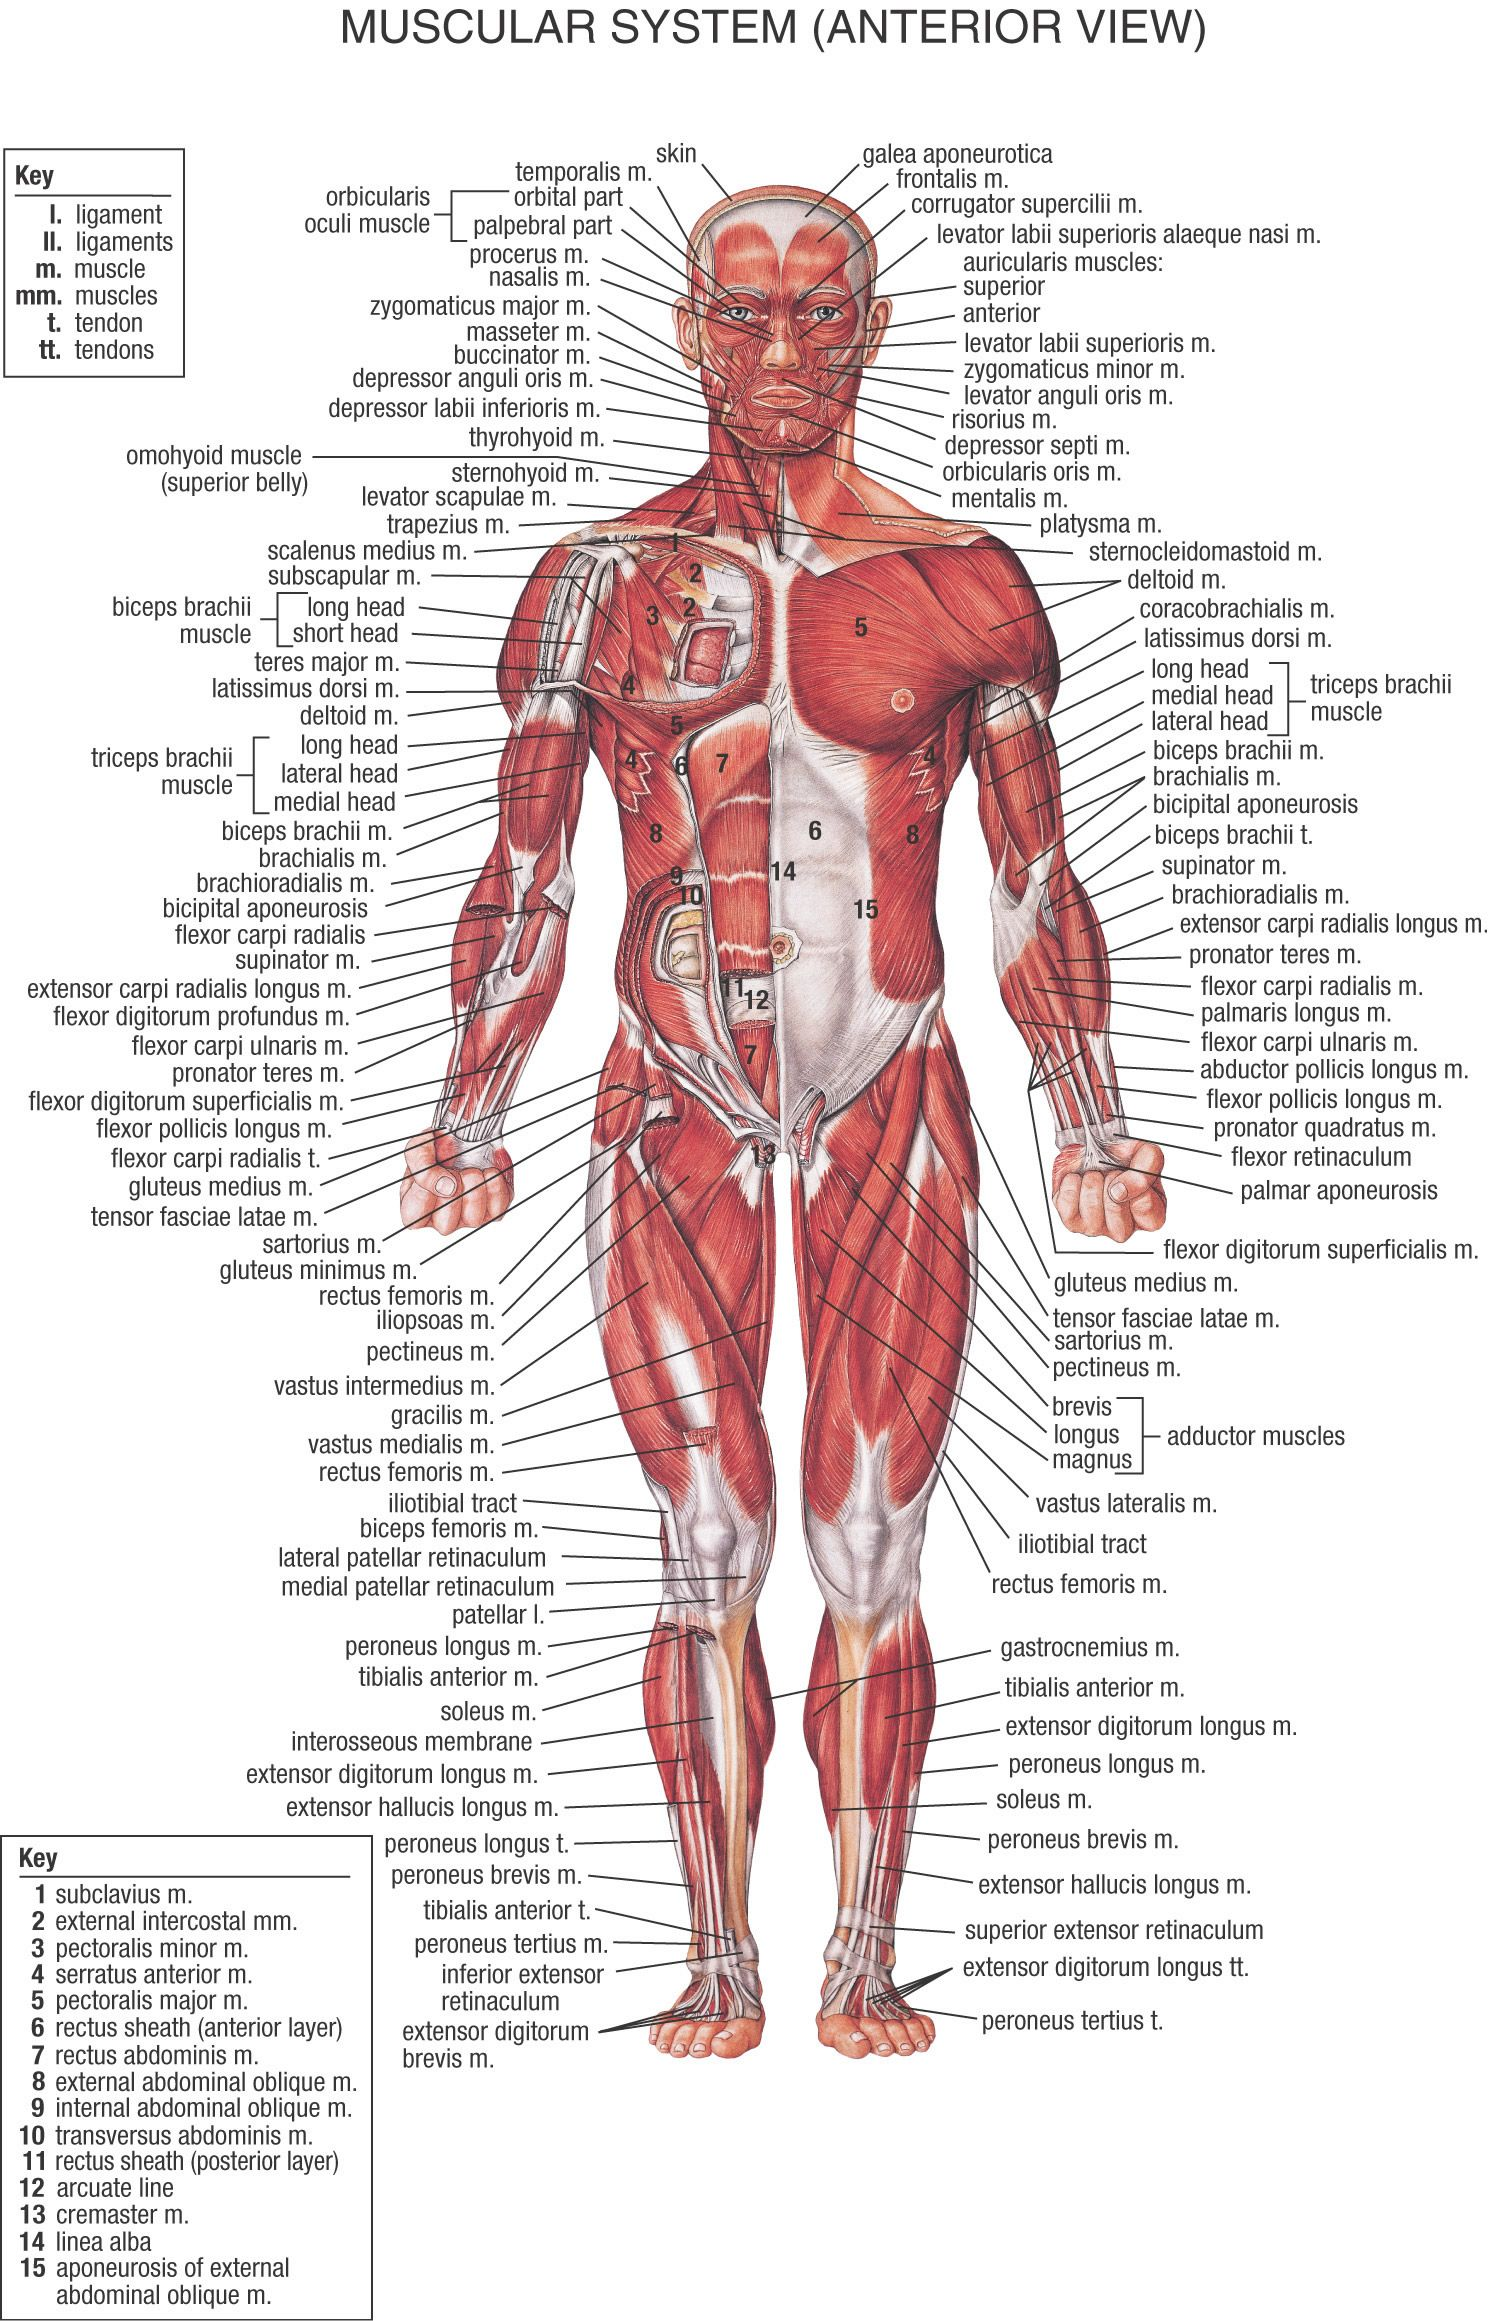 Muscular Anatomy Physiology Diagram - Auto Electrical Wiring Diagram •